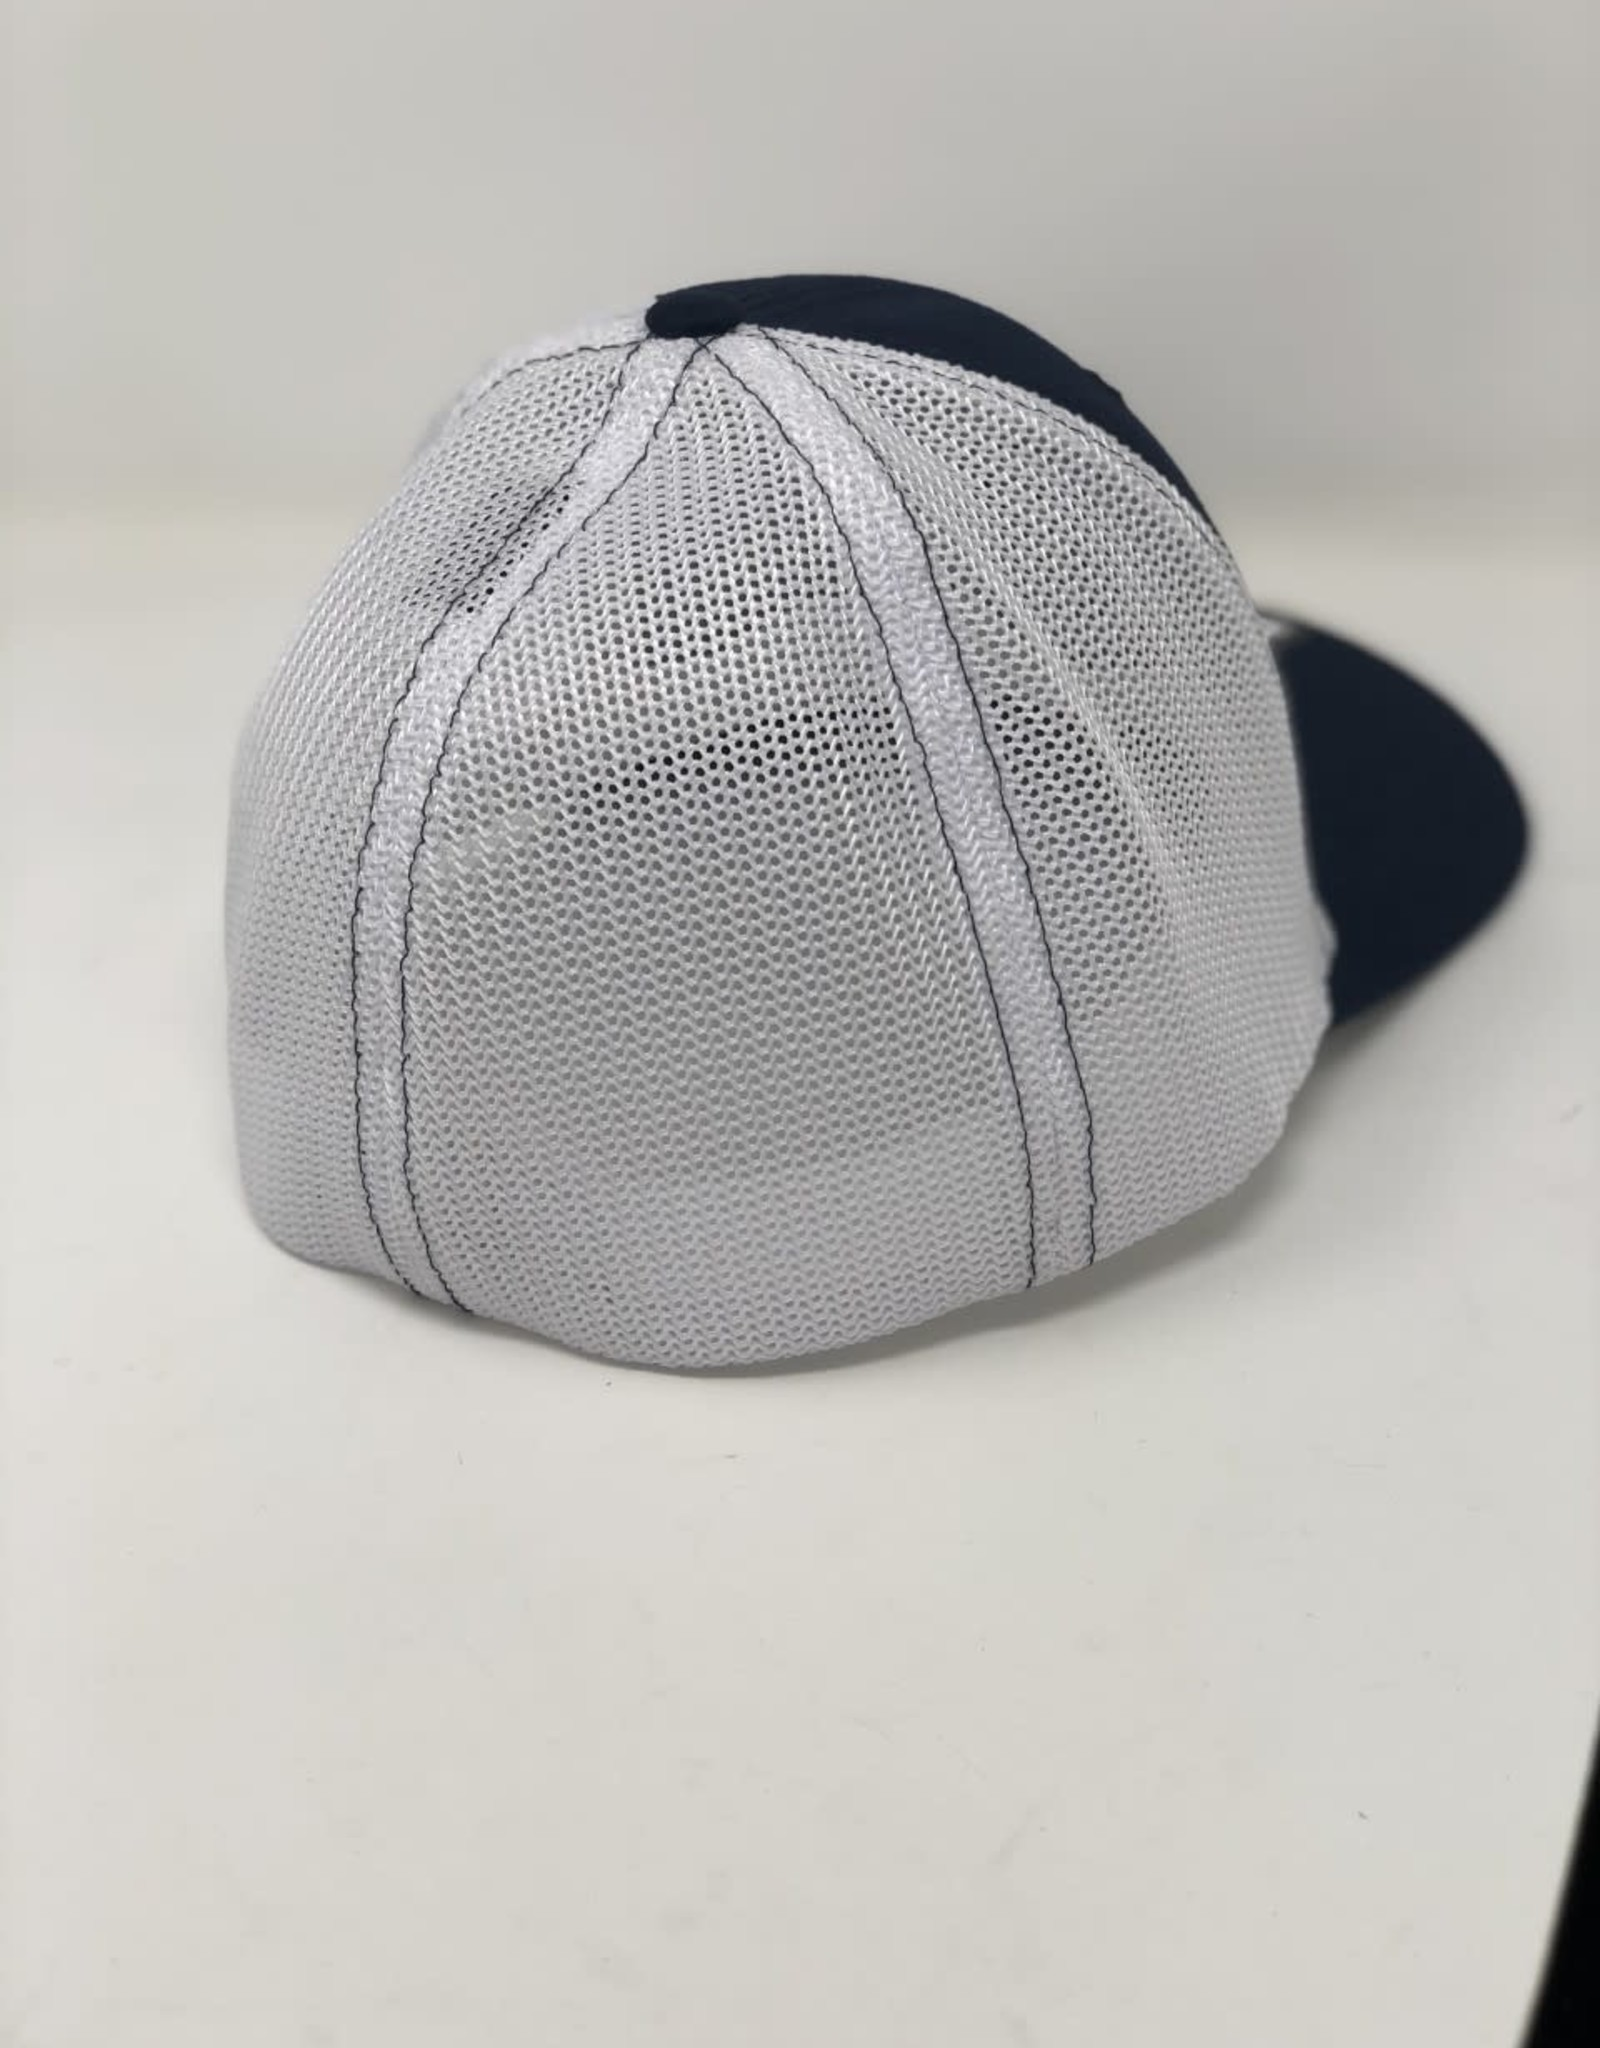 TGP Services Lady Lions Flexfit SM/MD (Navy/White) Richardson